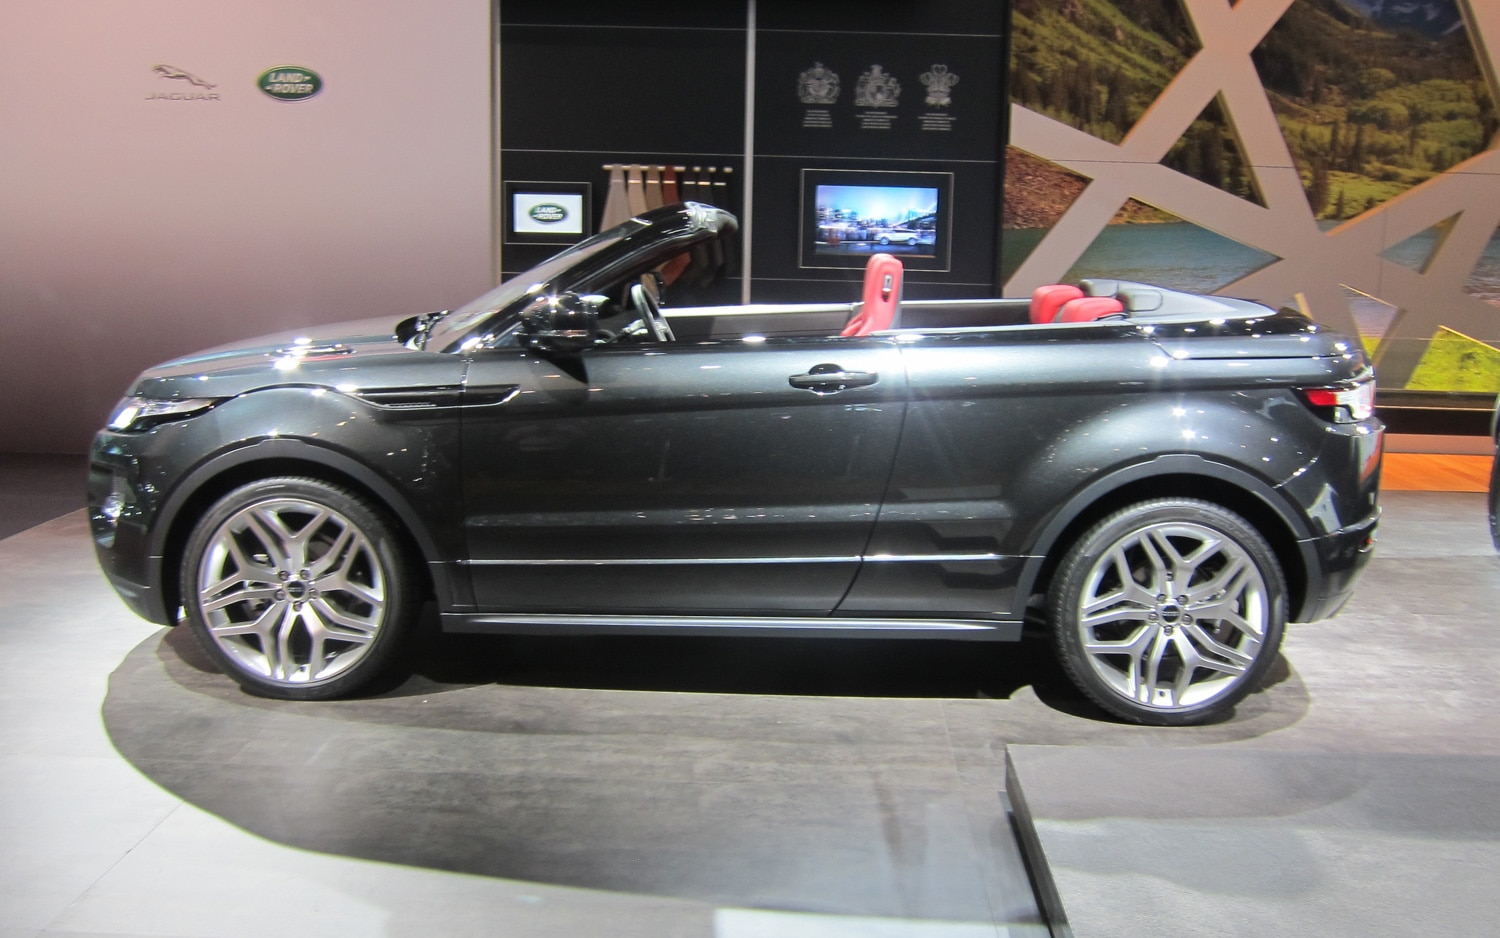 https://st.automobilemag.com/uploads/sites/11/2012/04/Land-Rover-Range-Rover-Evoque-convertible-concept-profile1.jpg